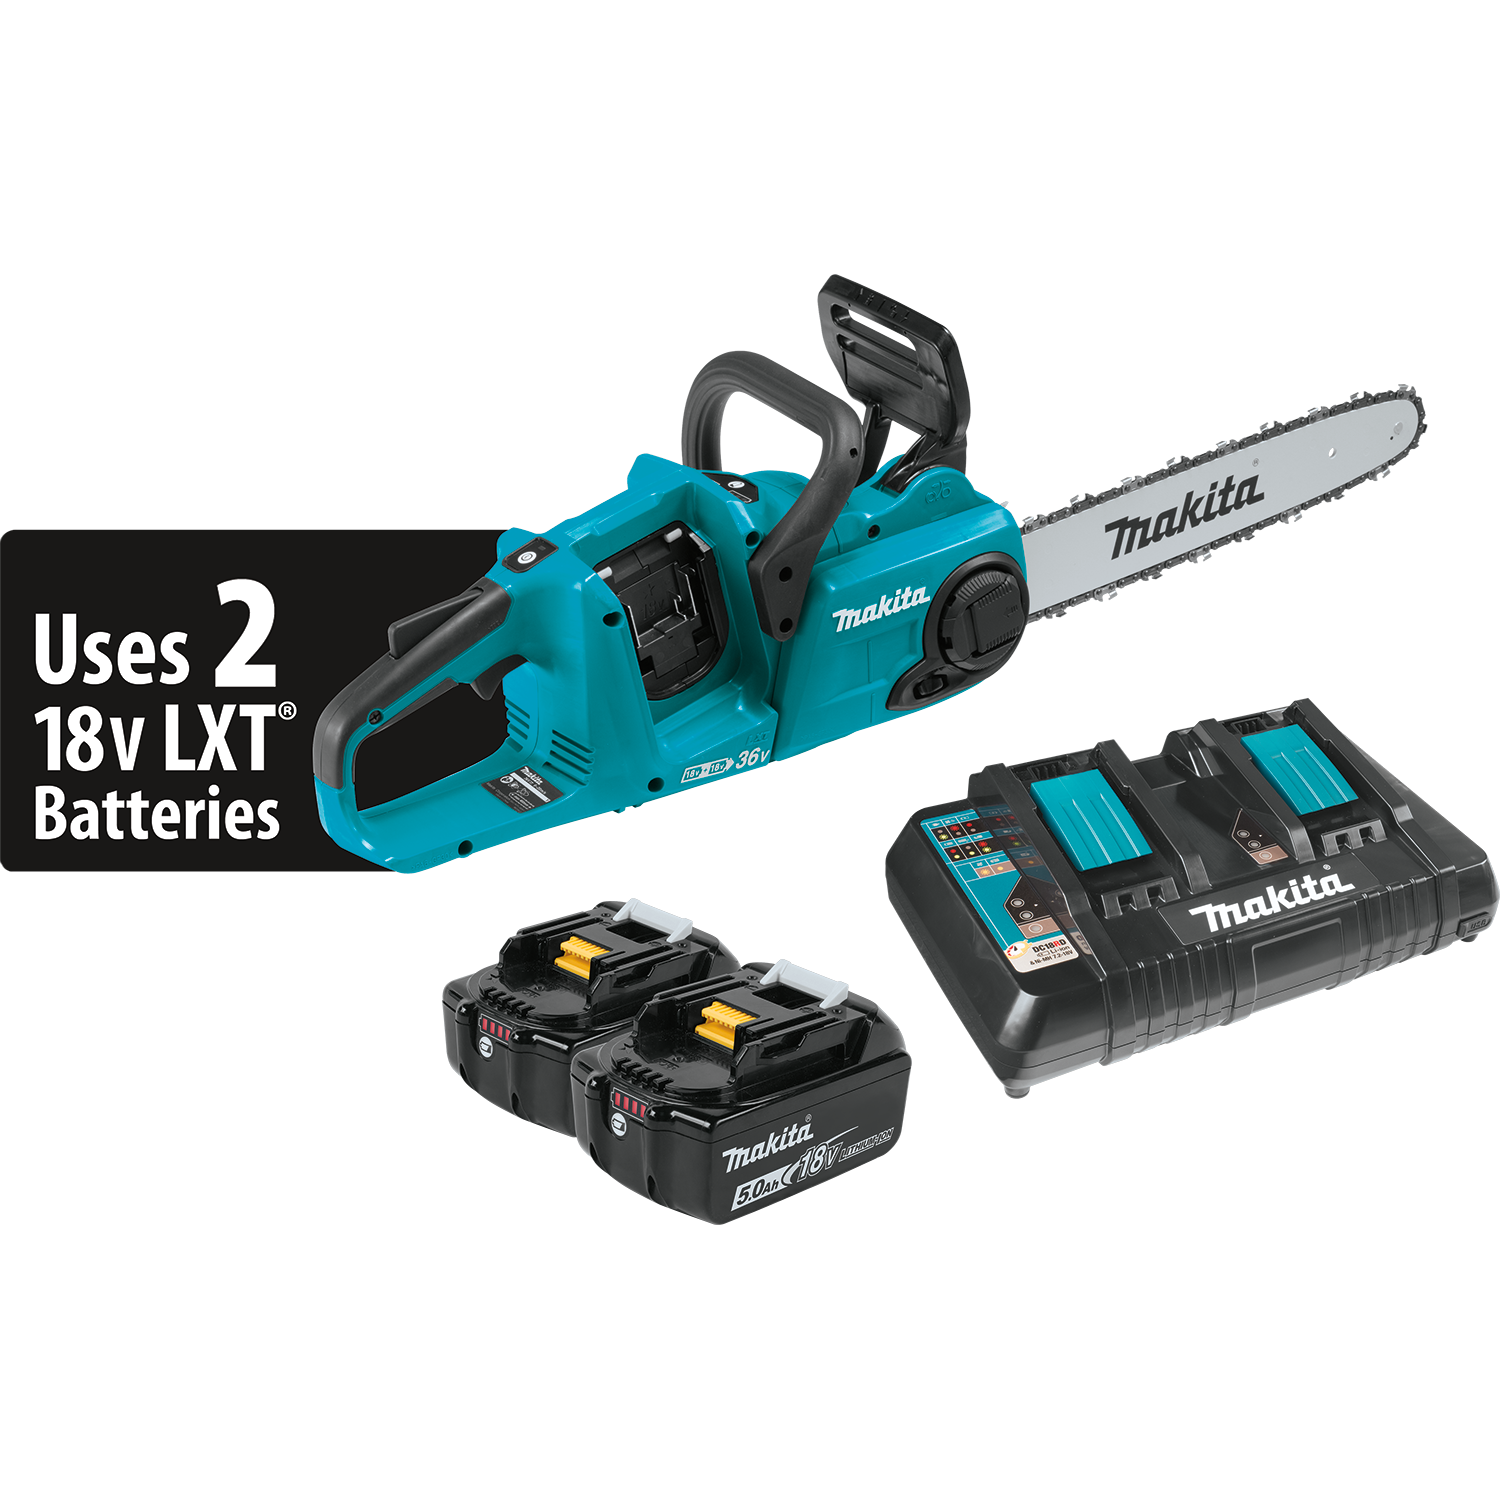 Makita usa product details xcu03pt xcu03pt greentooth Choice Image